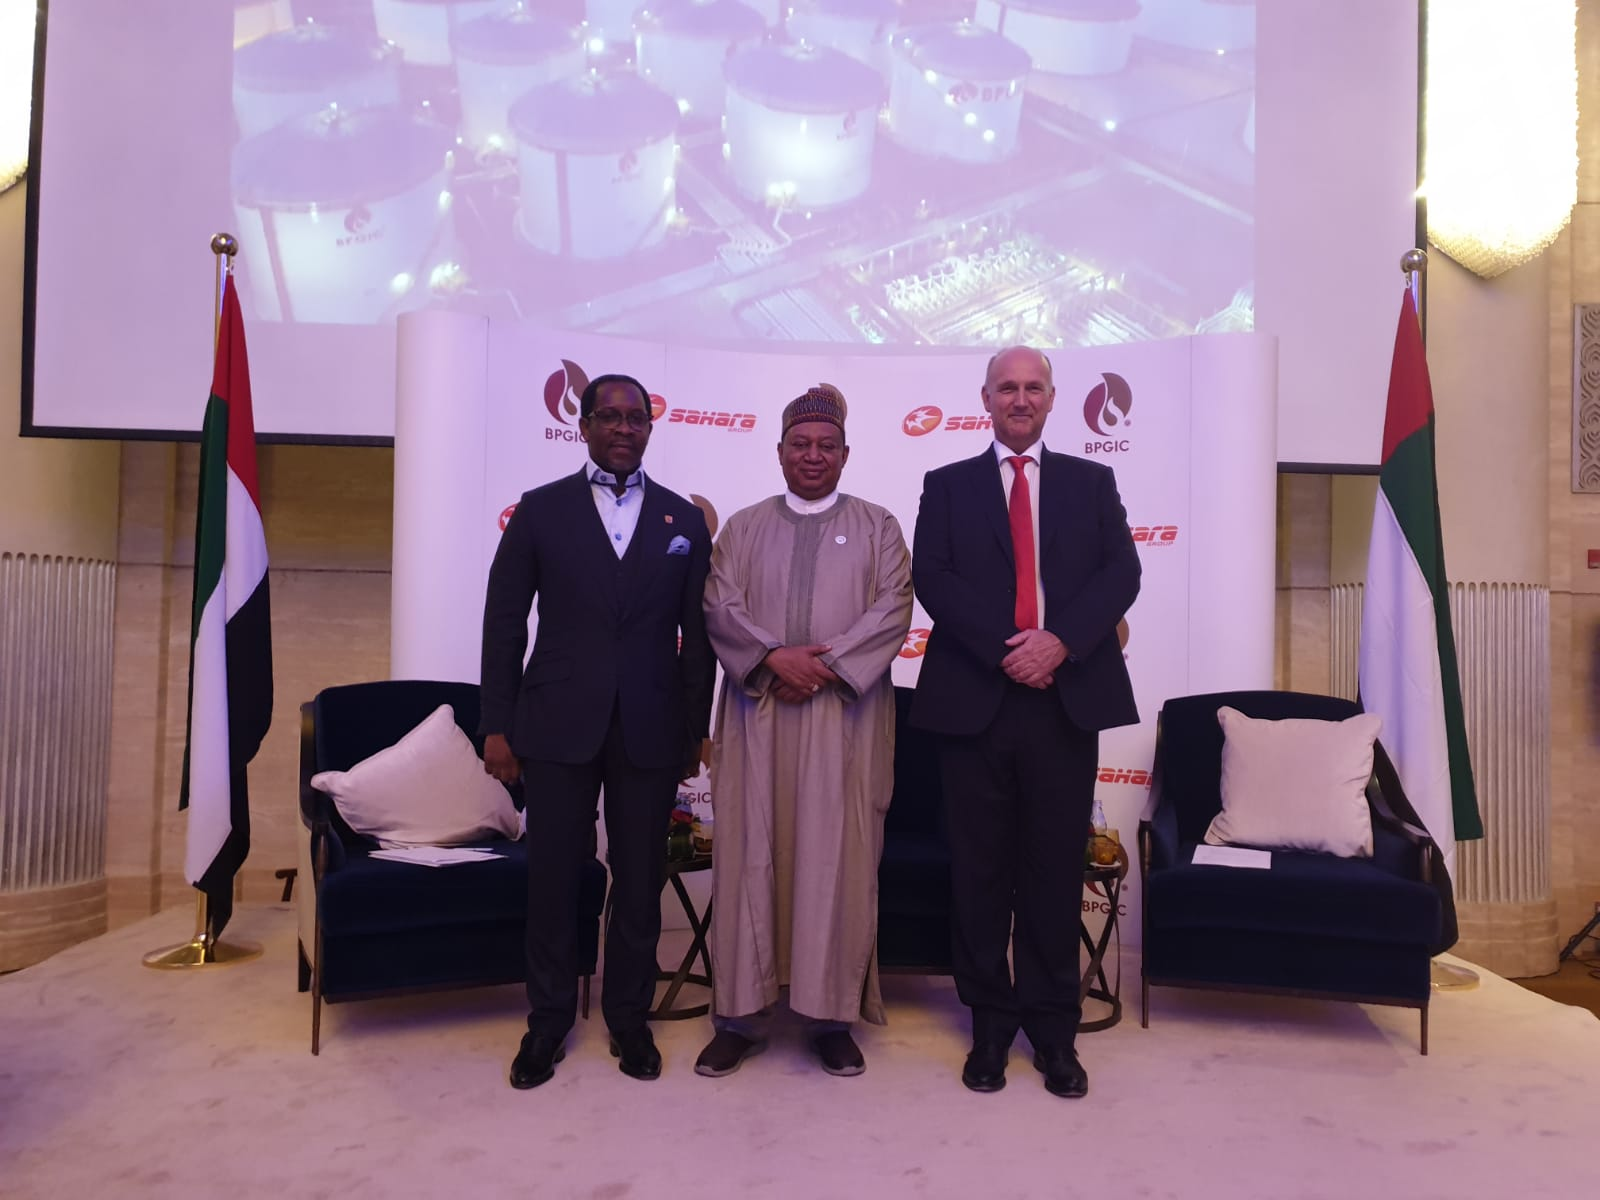 Executive Director, Sahara Group, WaleAjibade, Secretary General, Organisation of Petroleum Exporting Companies (OPEC), H.E. Mohammed Barkindo and Chief Executive Officer, Brooge Petroleum and Gas Investment Co (BPGIC), Nicolaas Paardenkooper at the ceremony that sealed the partnership between Sahara Energy and BPGIC towards the construction of a refinery that will produce IMO 2020 compliant fuels in the United Arab Emirates